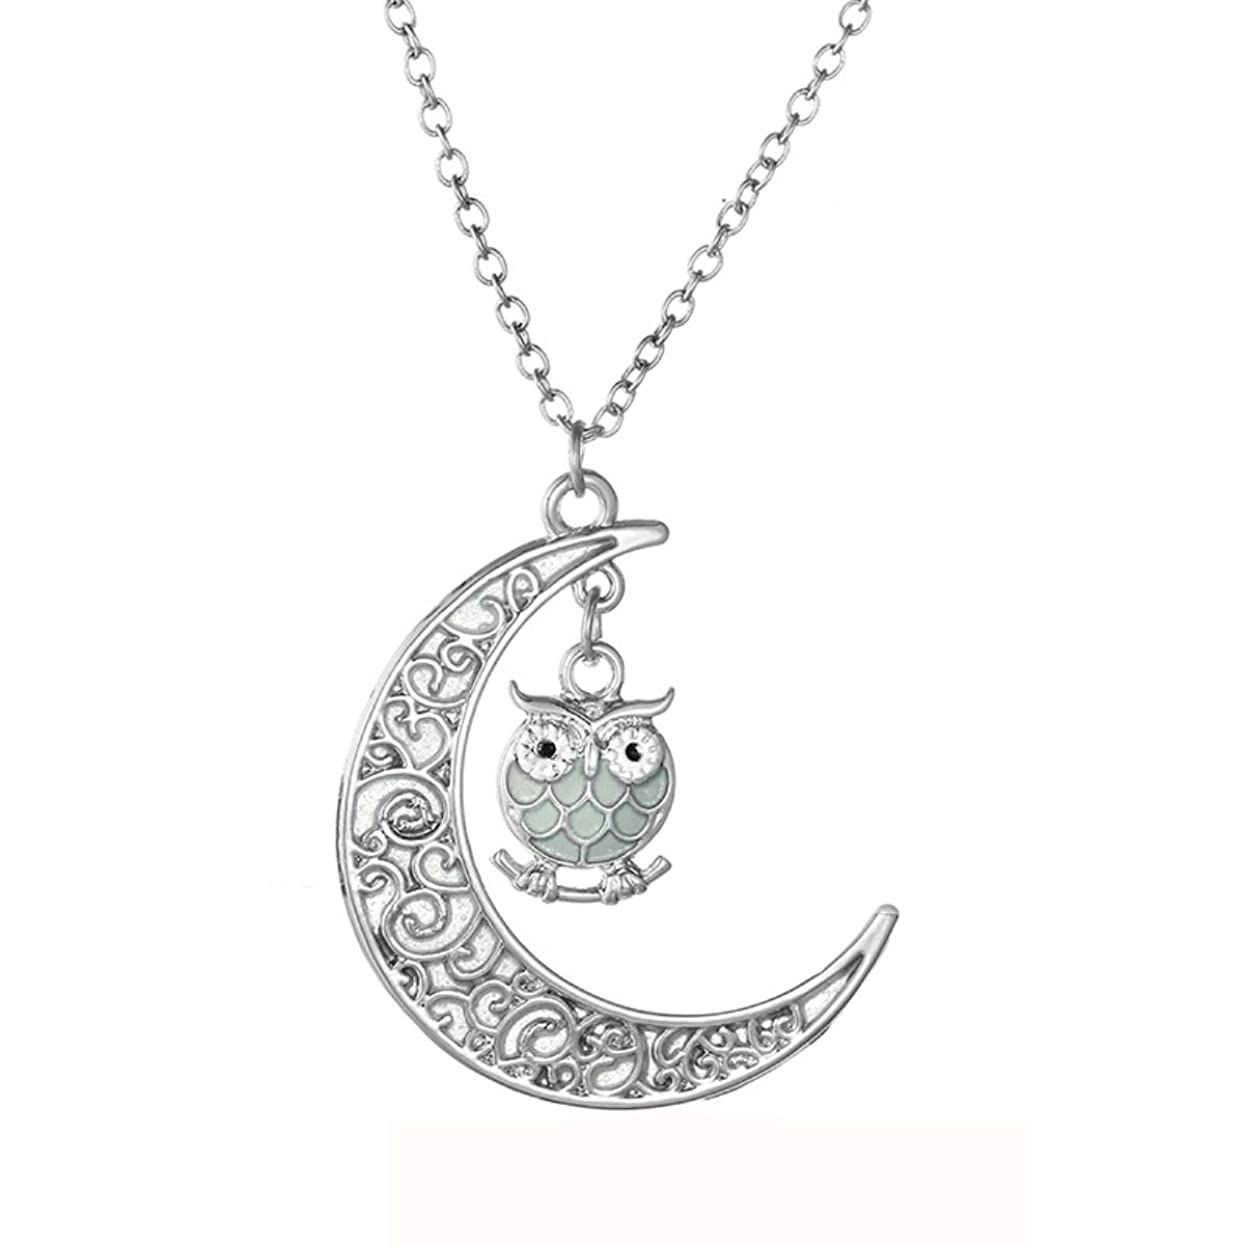 URDEAR Luminous Series Moon Charms Pendant Necklace Glowing in The Dark Moon Necklace Jerwelry Gifts for Women Girls w36406536870856